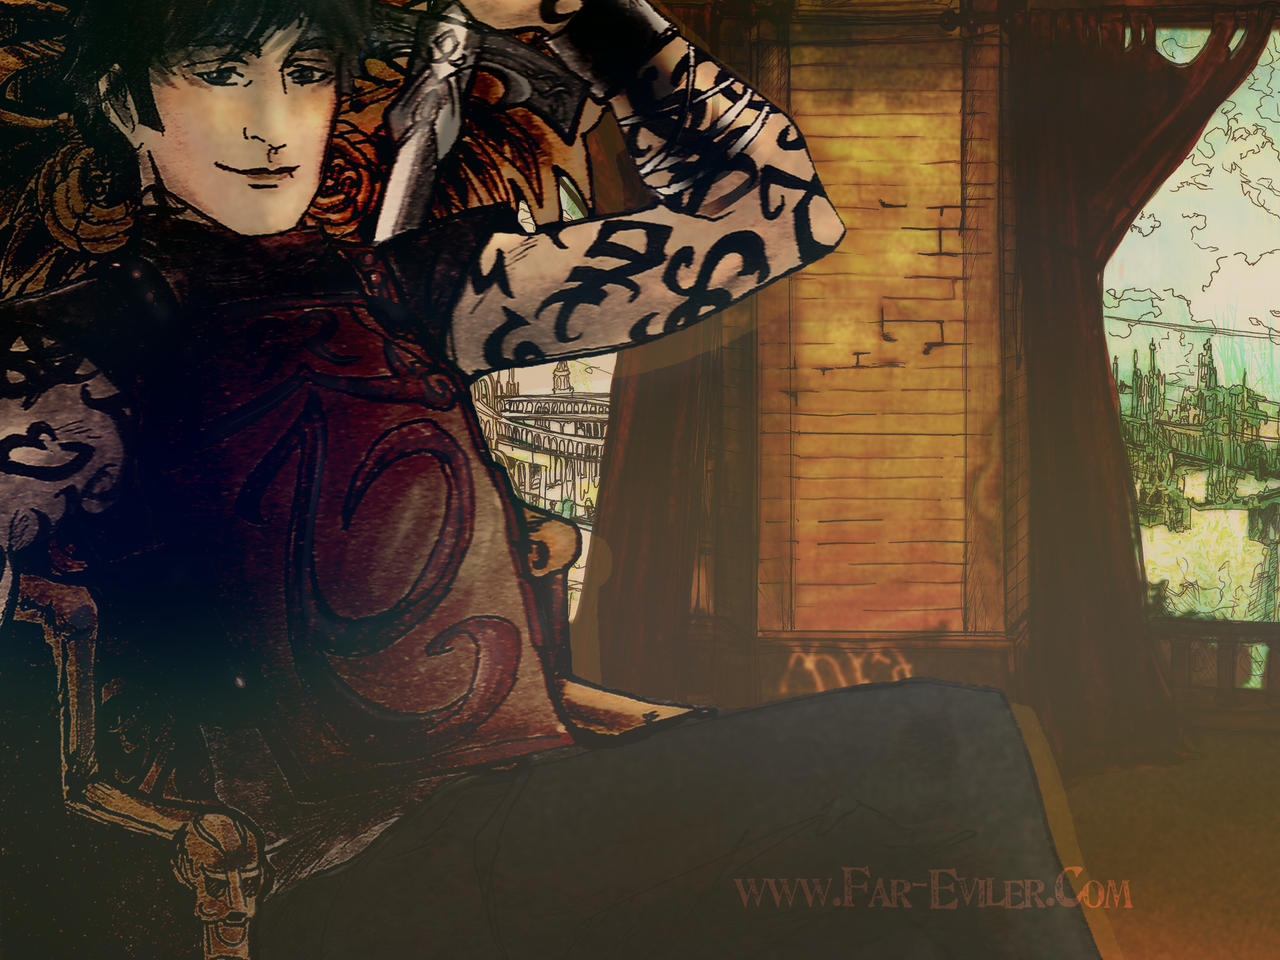 TMI - SEBASTIAN-WALLPAPER by far-eviler